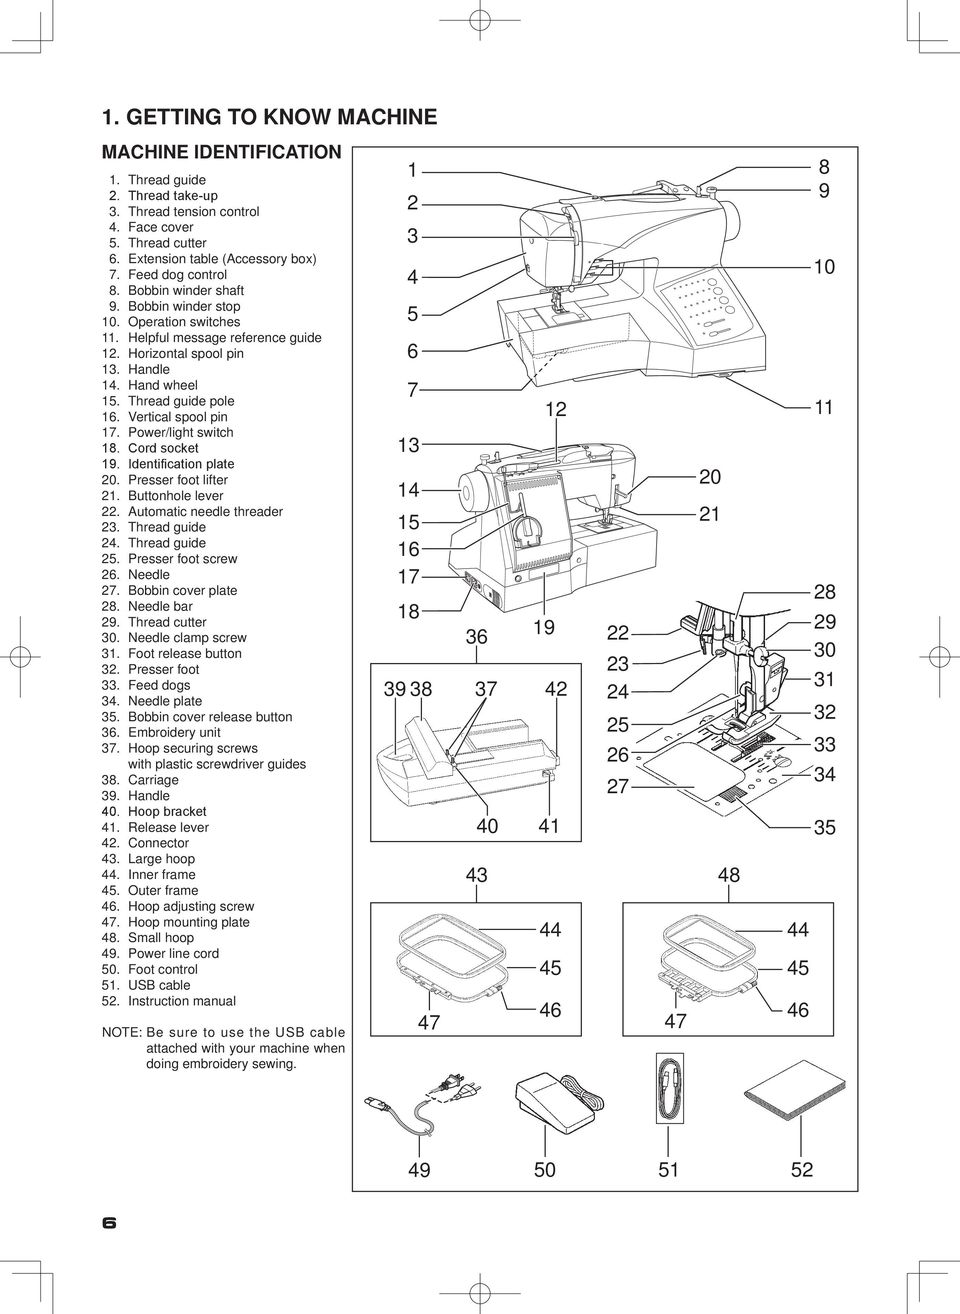 Power/light switch 18. Cord socket 19. Identification plate 20. Presser foot lifter 21. Buttonhole lever 22. Automatic needle threader 23. Thread guide 24. Thread guide 25. Presser foot screw 26.